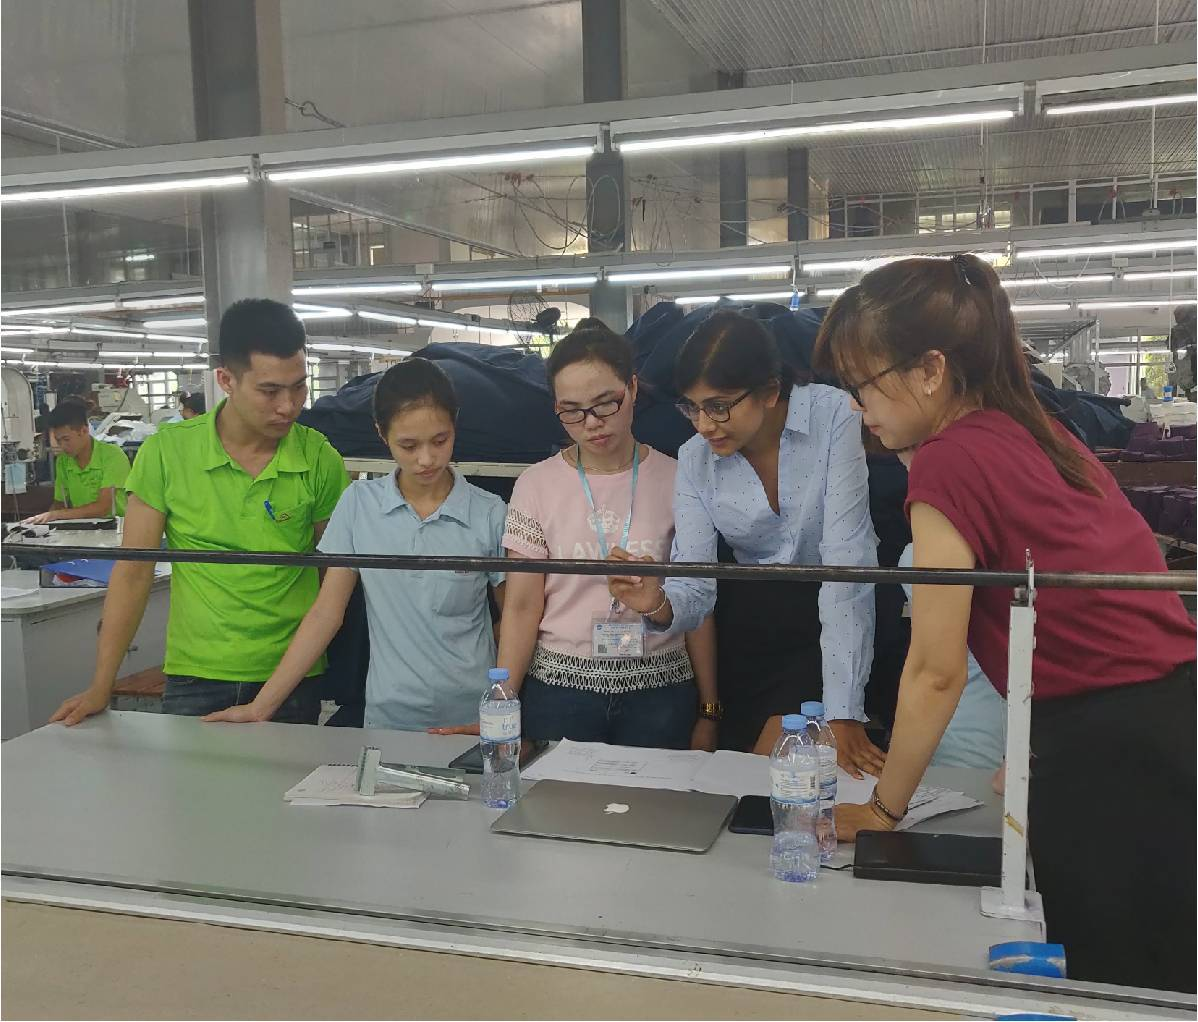 5 Song Hong employees looking at a laptop on cutting table in garment factory